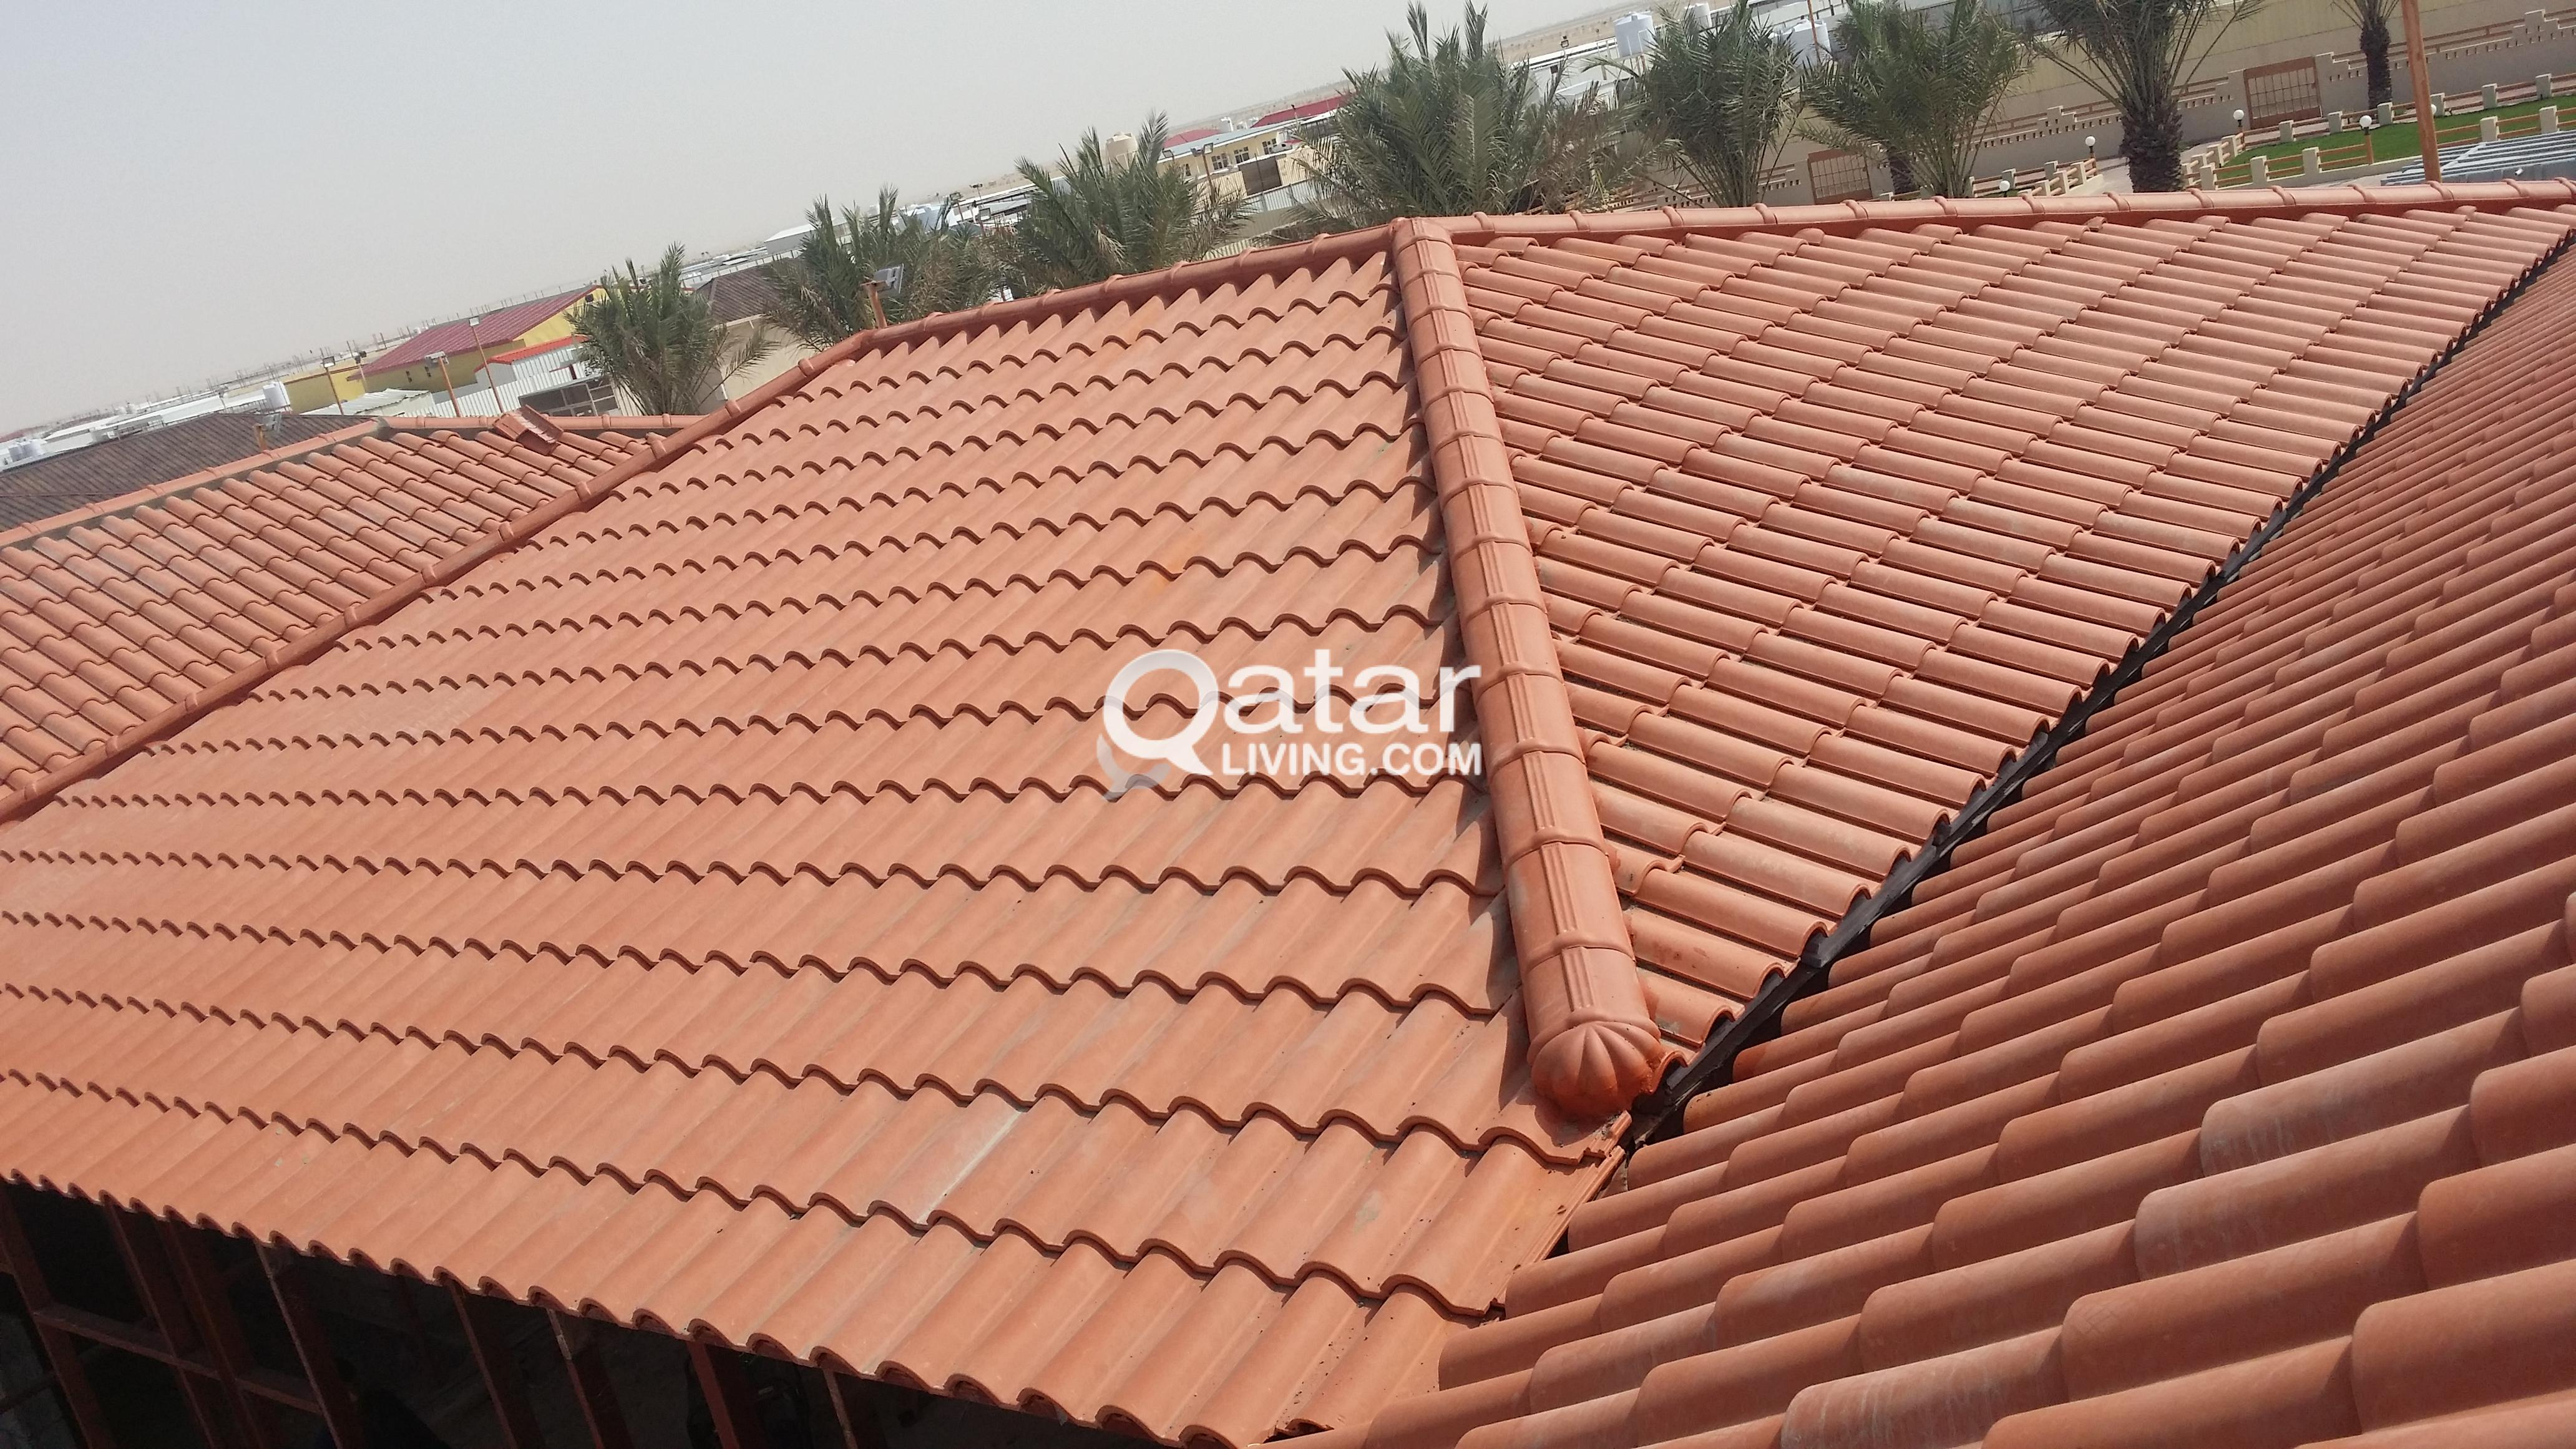 Roof Tiles Supply and Installation at Best Price | Qatar Living